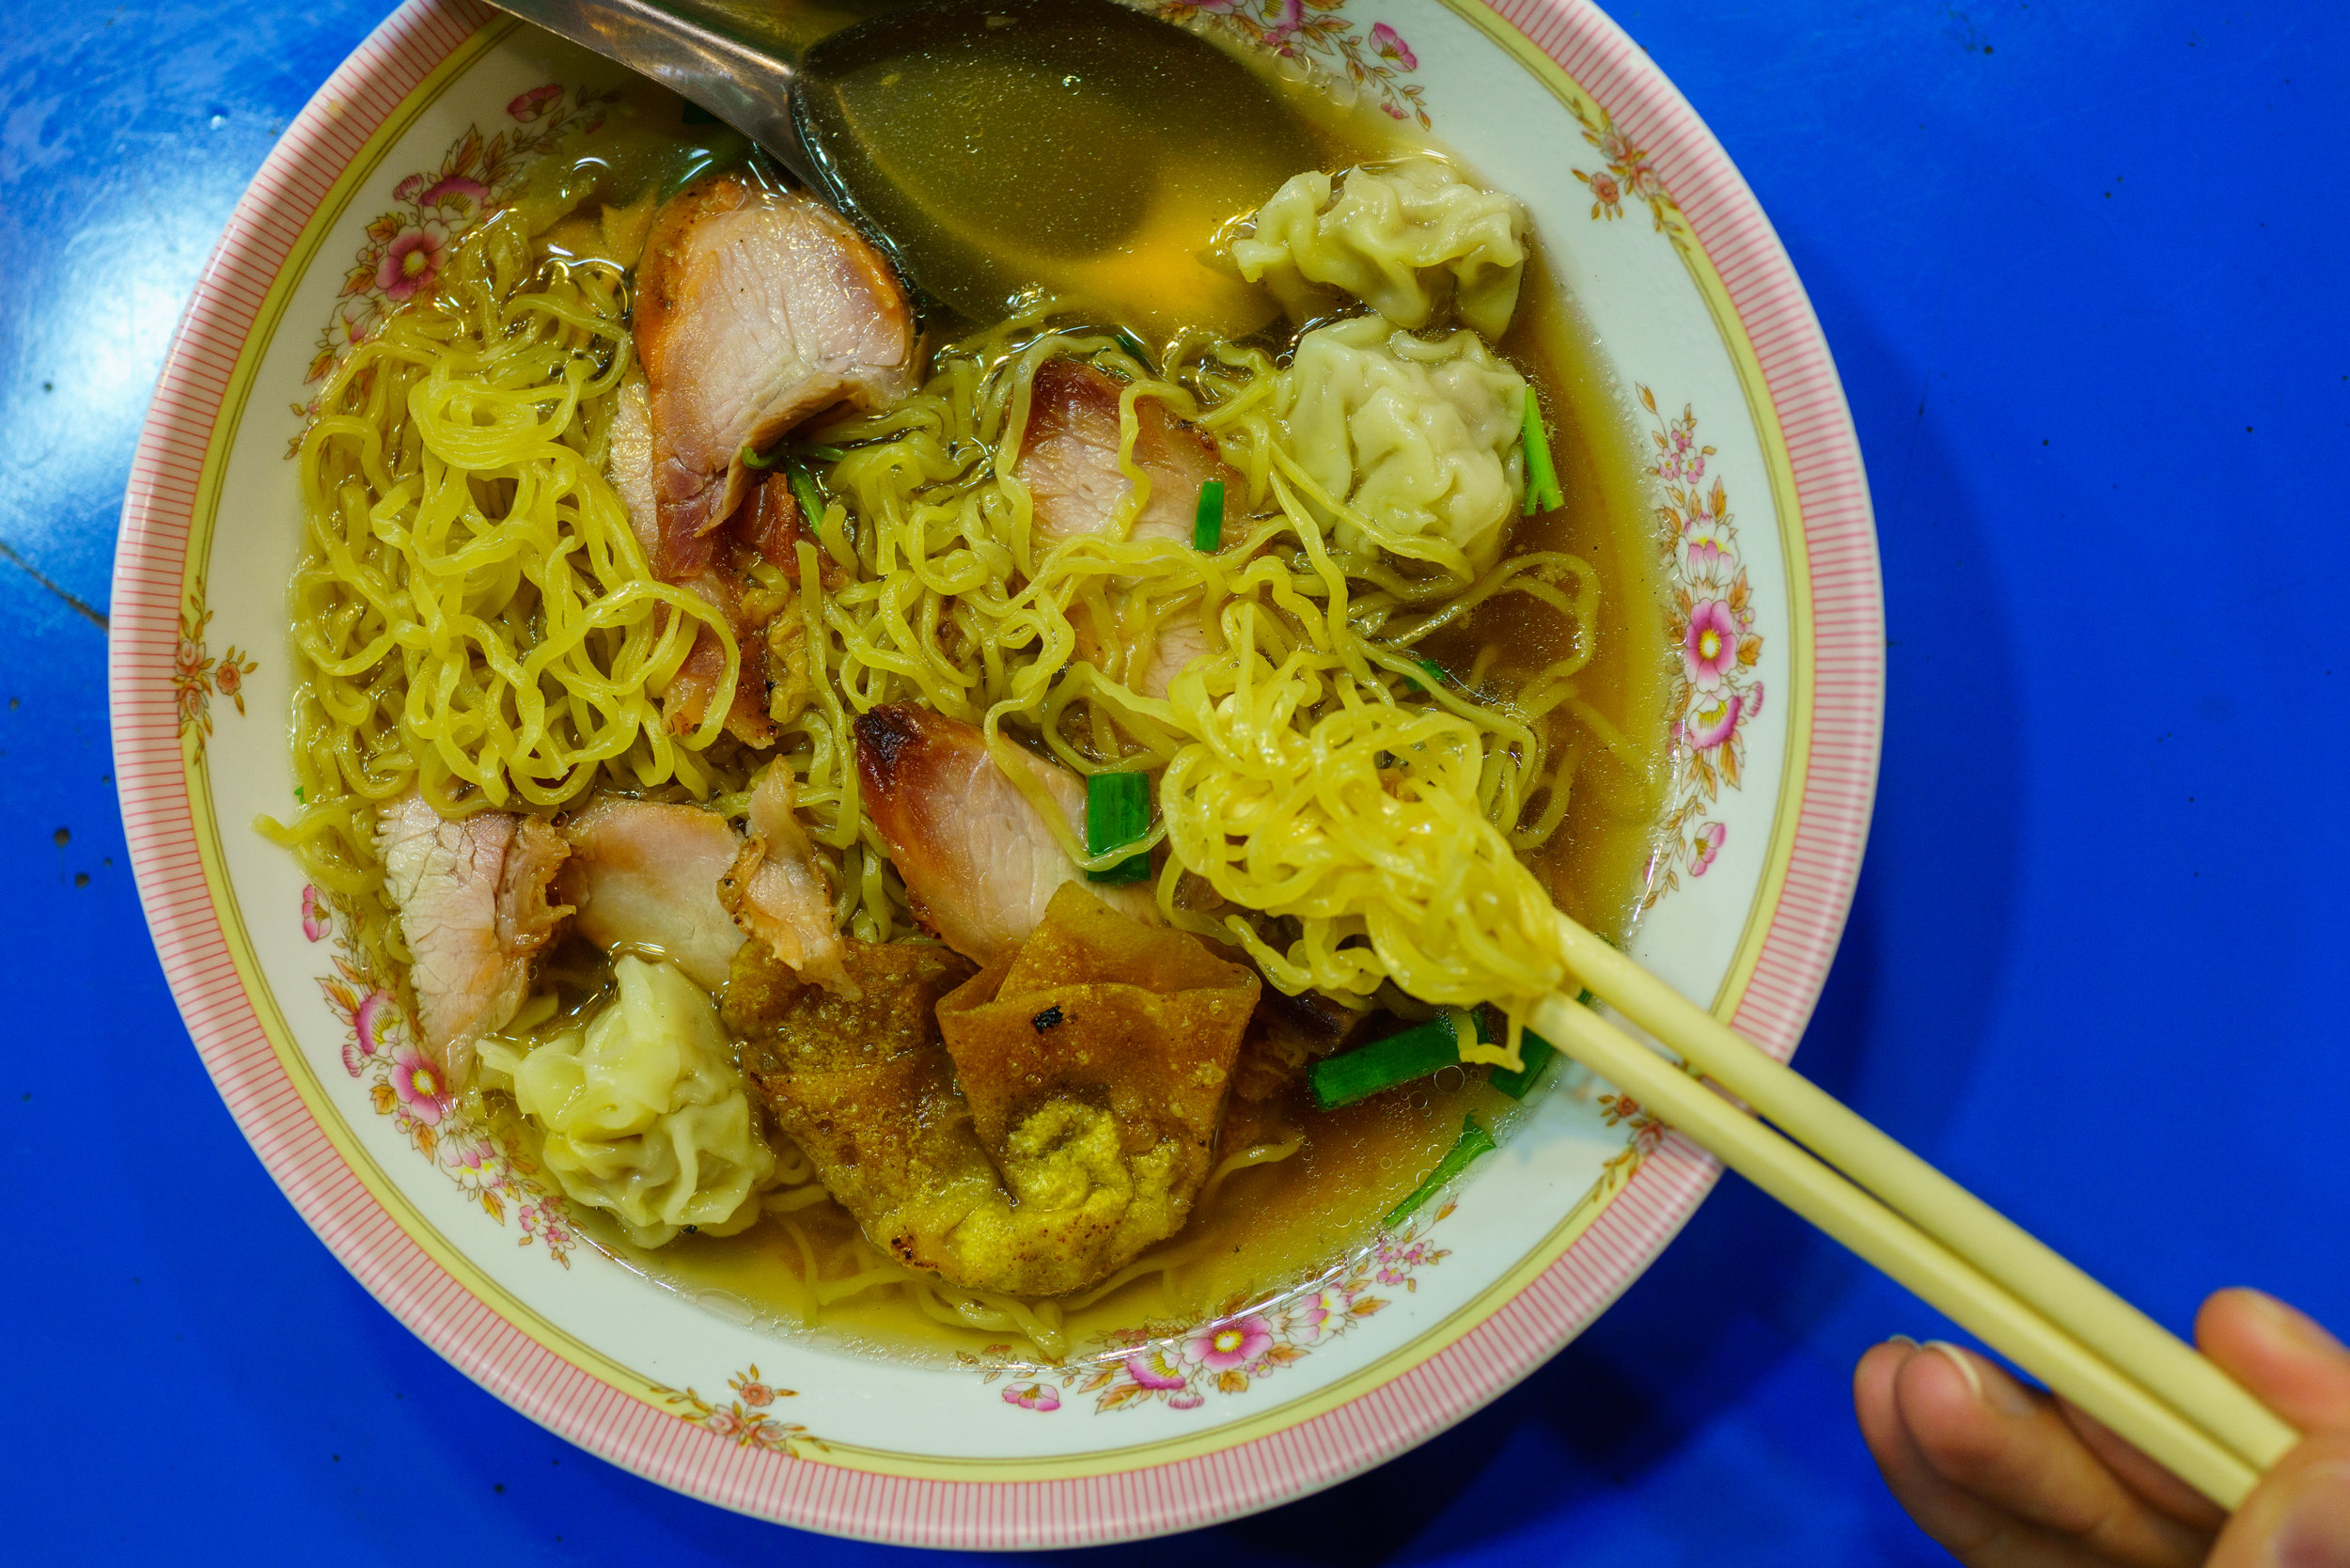 We stopped for hot bowls of noodle soup at a covered street food vendor on a rainy night; wonton noodle soup